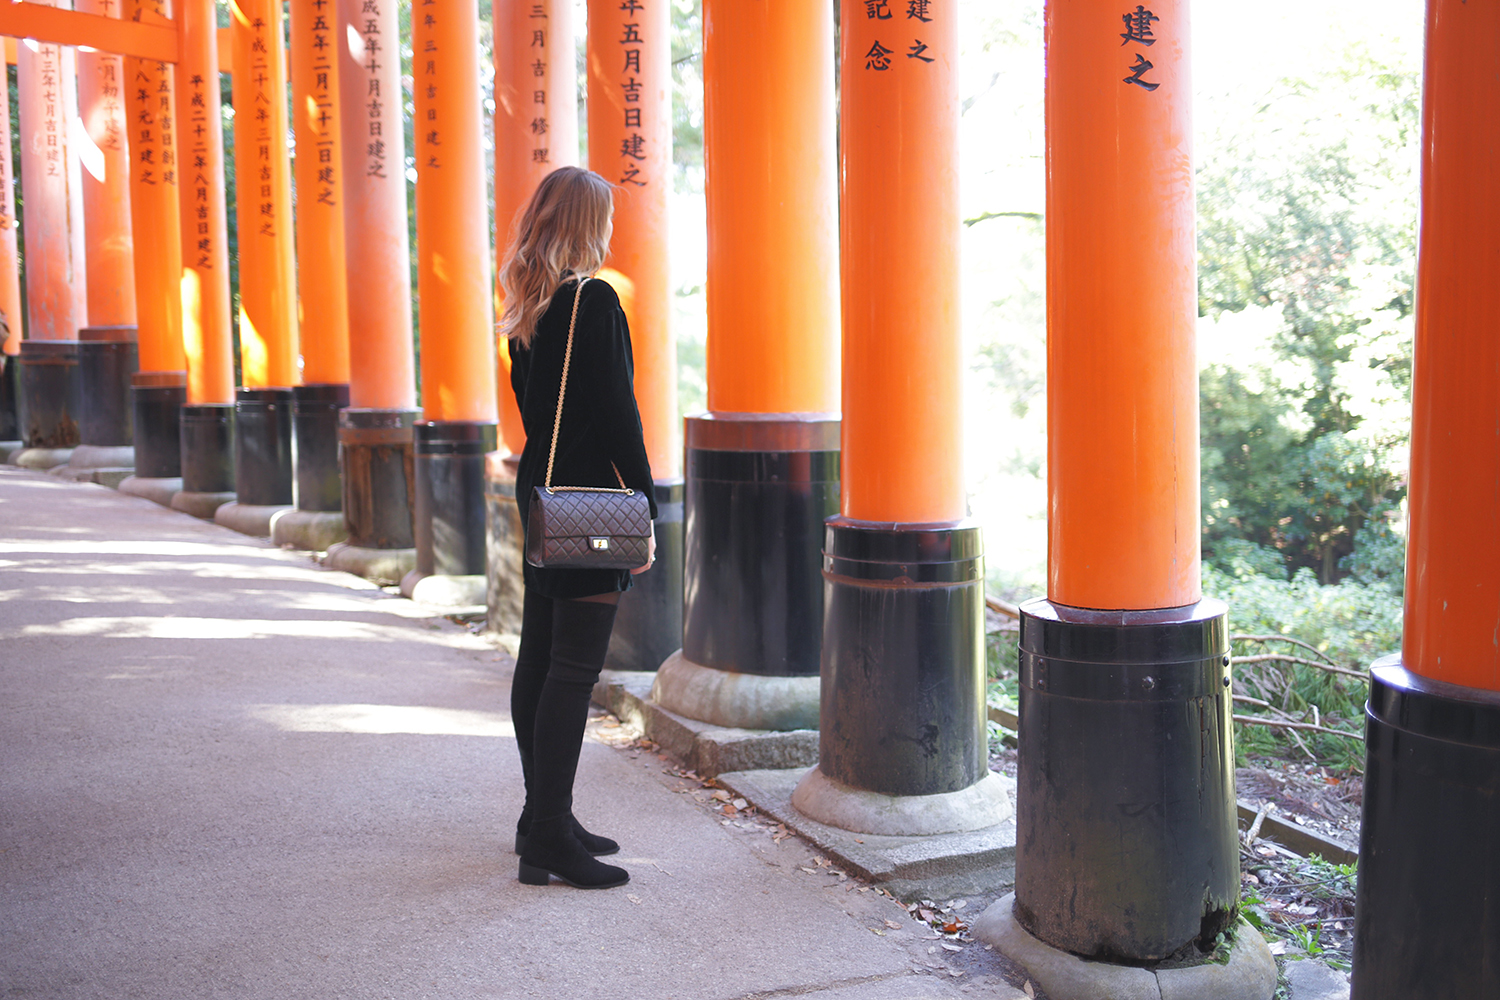 VELVET_DRESS_OTHER_STORIES_Fushimi_Inari_Taisha